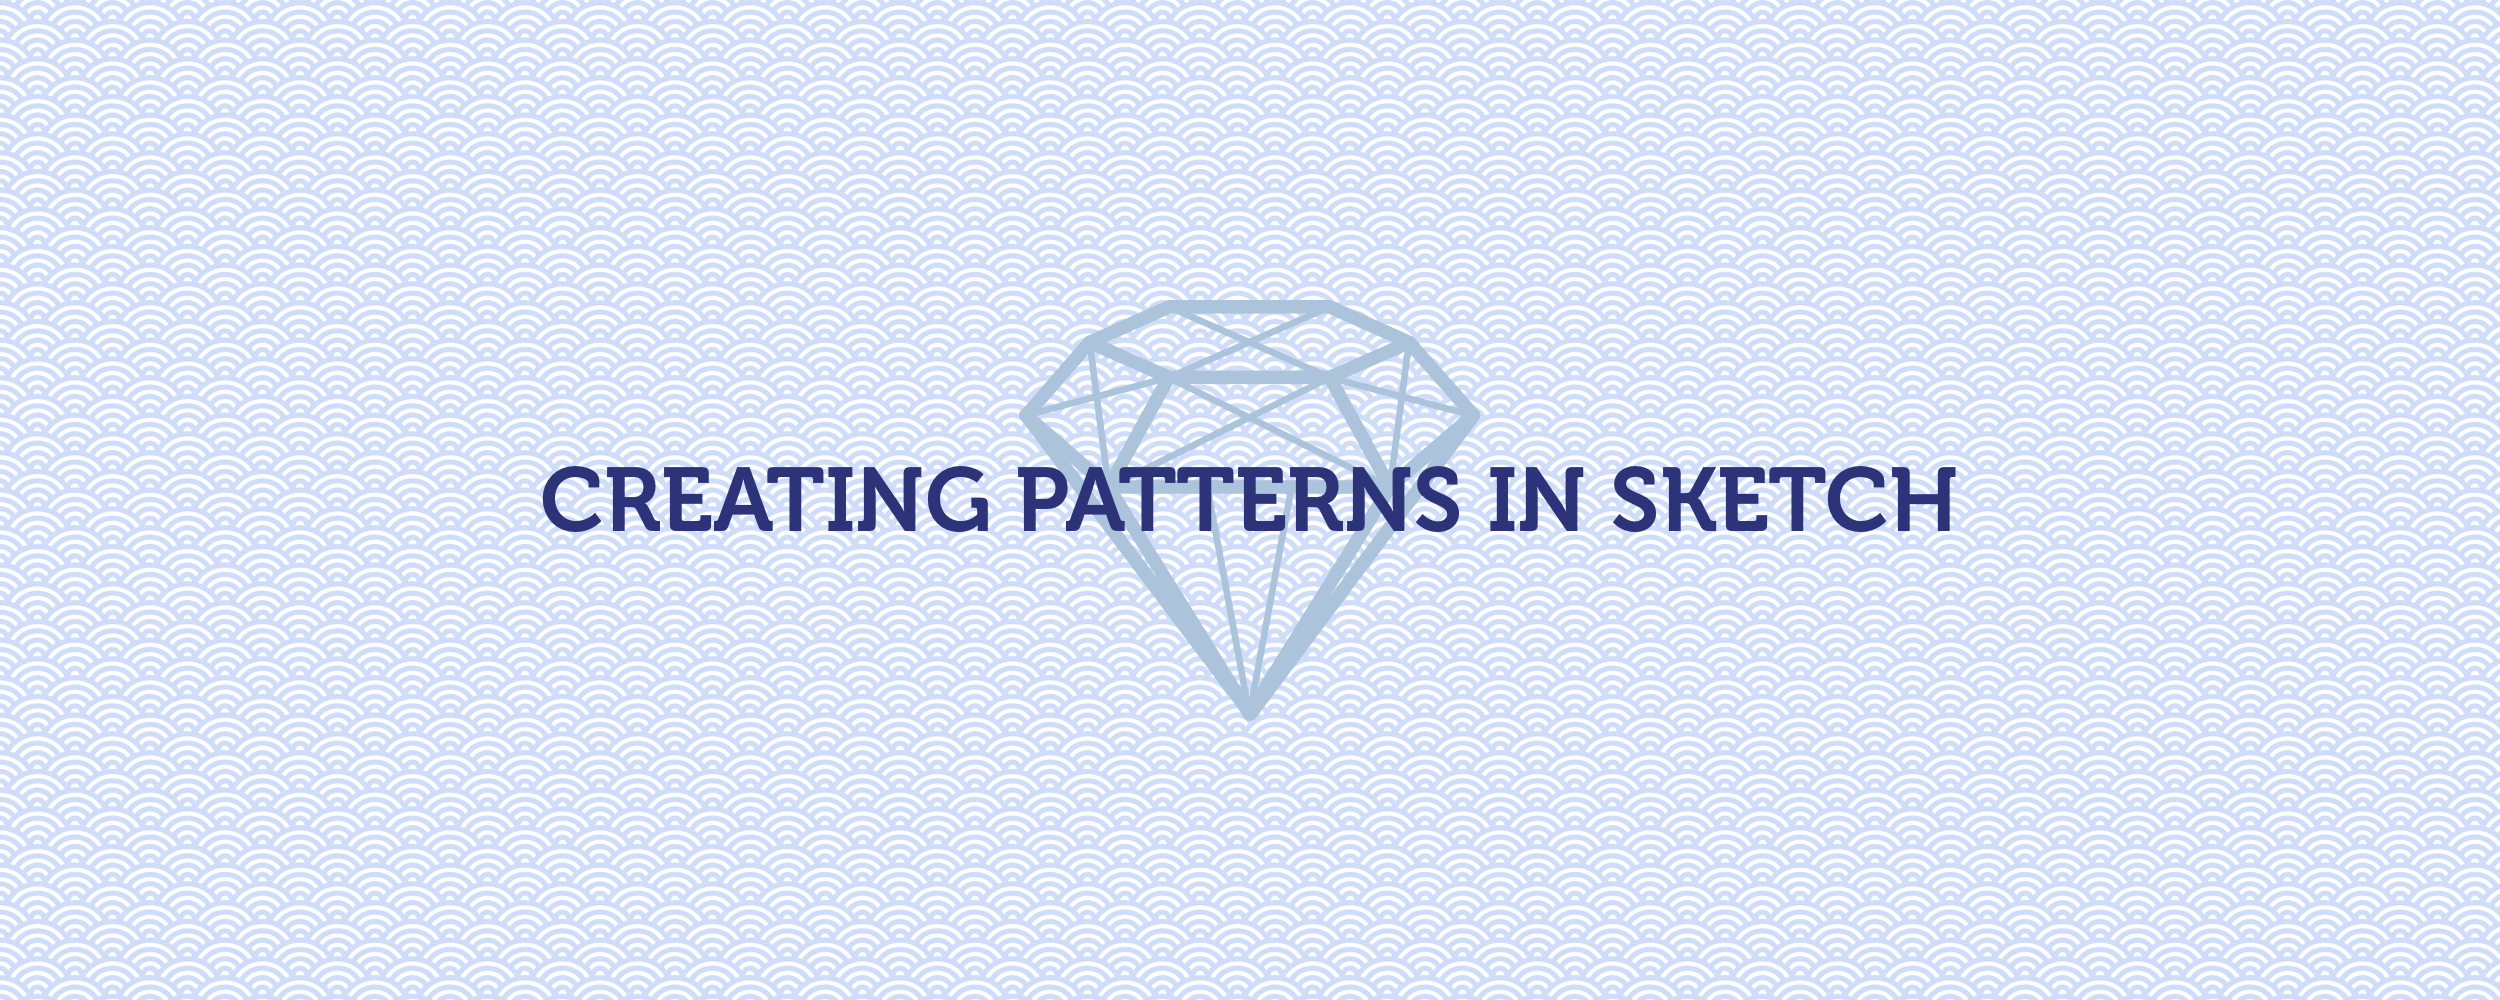 Creating Patterns In Sketch - Design + Sketch - Medium